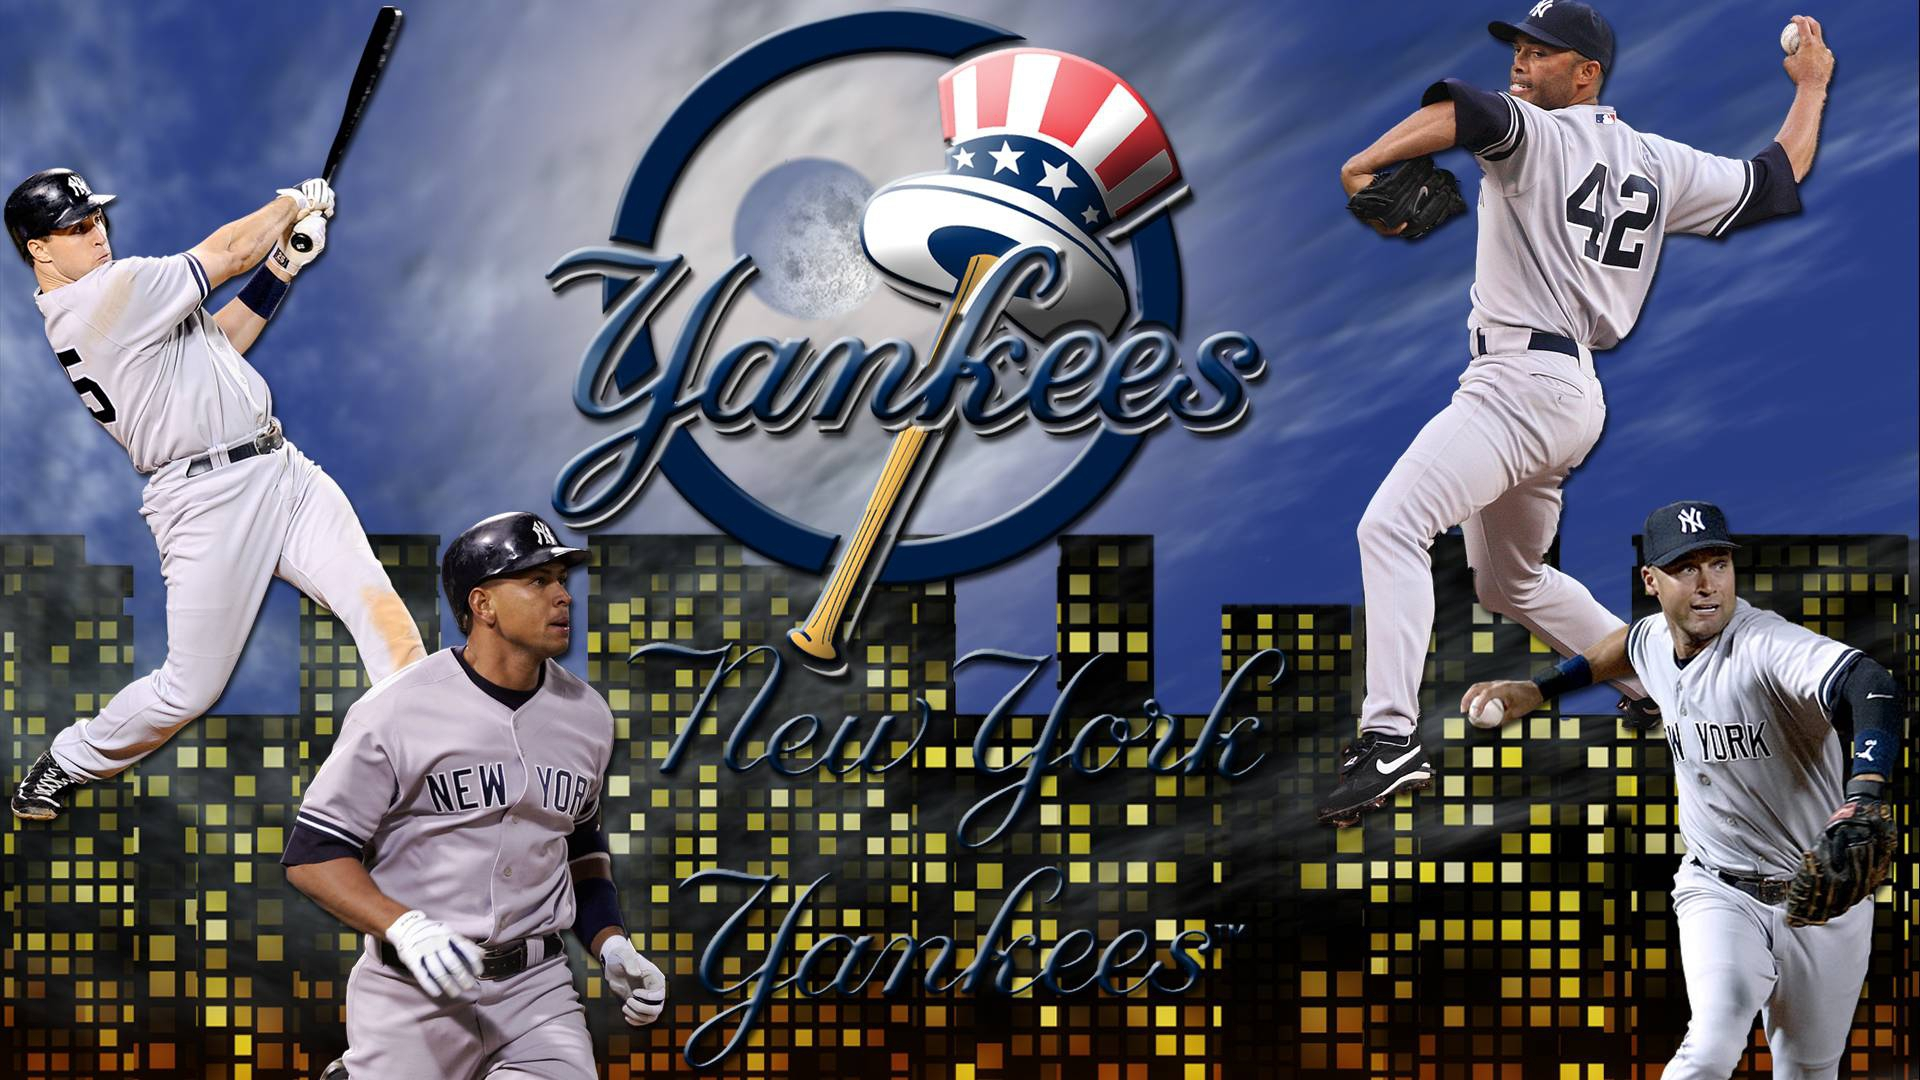 New York Yankees Wallpapers Images Photos Pictures Backgrounds